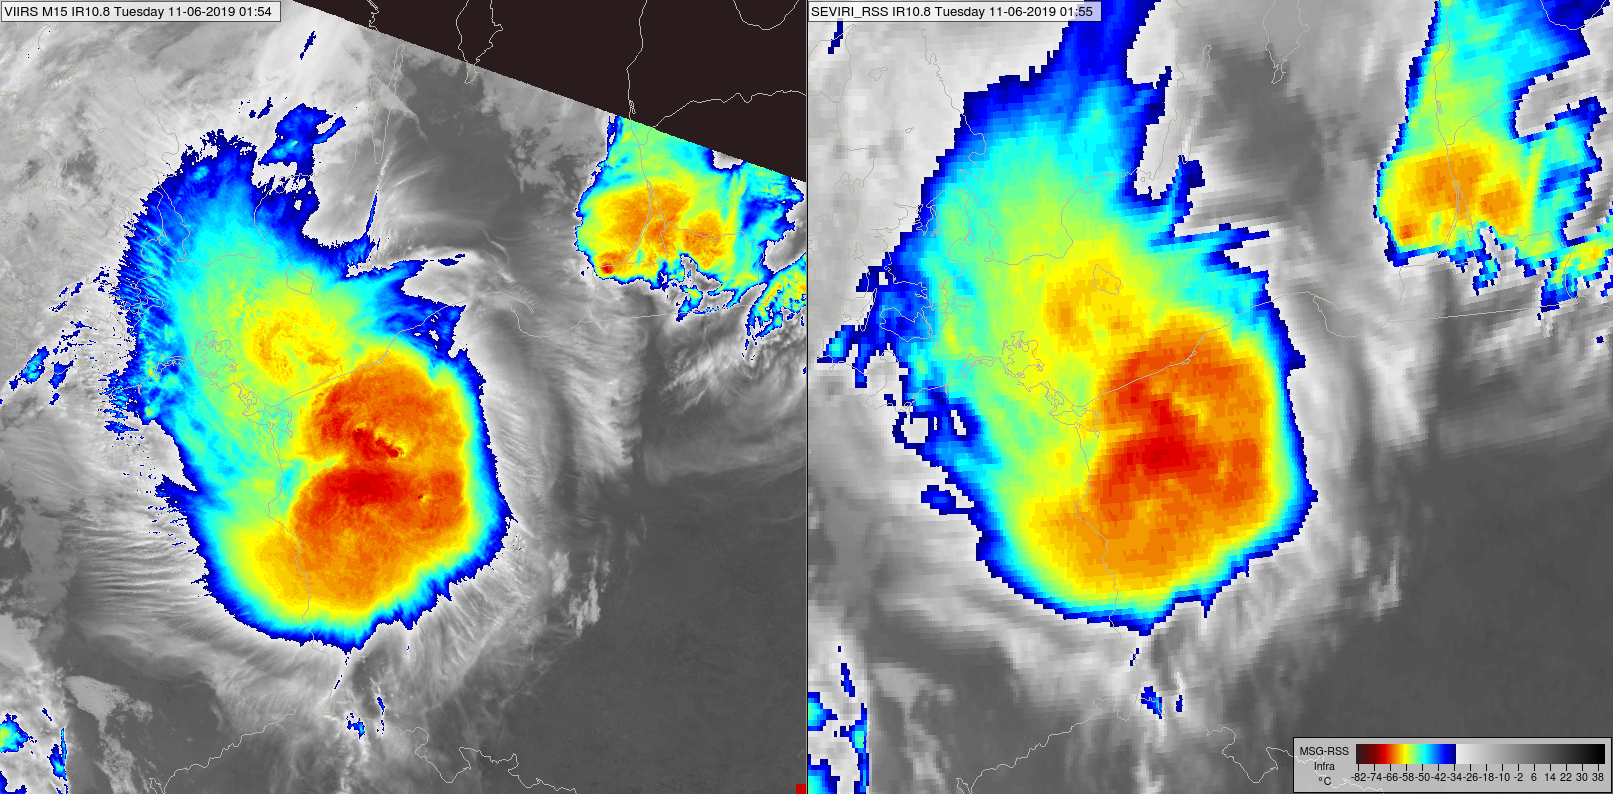 Comparison of IR10.8 images of NOAA-20 VIIRS (left) and Meteosat-11 SEVIRI (right), 11 June at 01:54 and 1:55 UTC